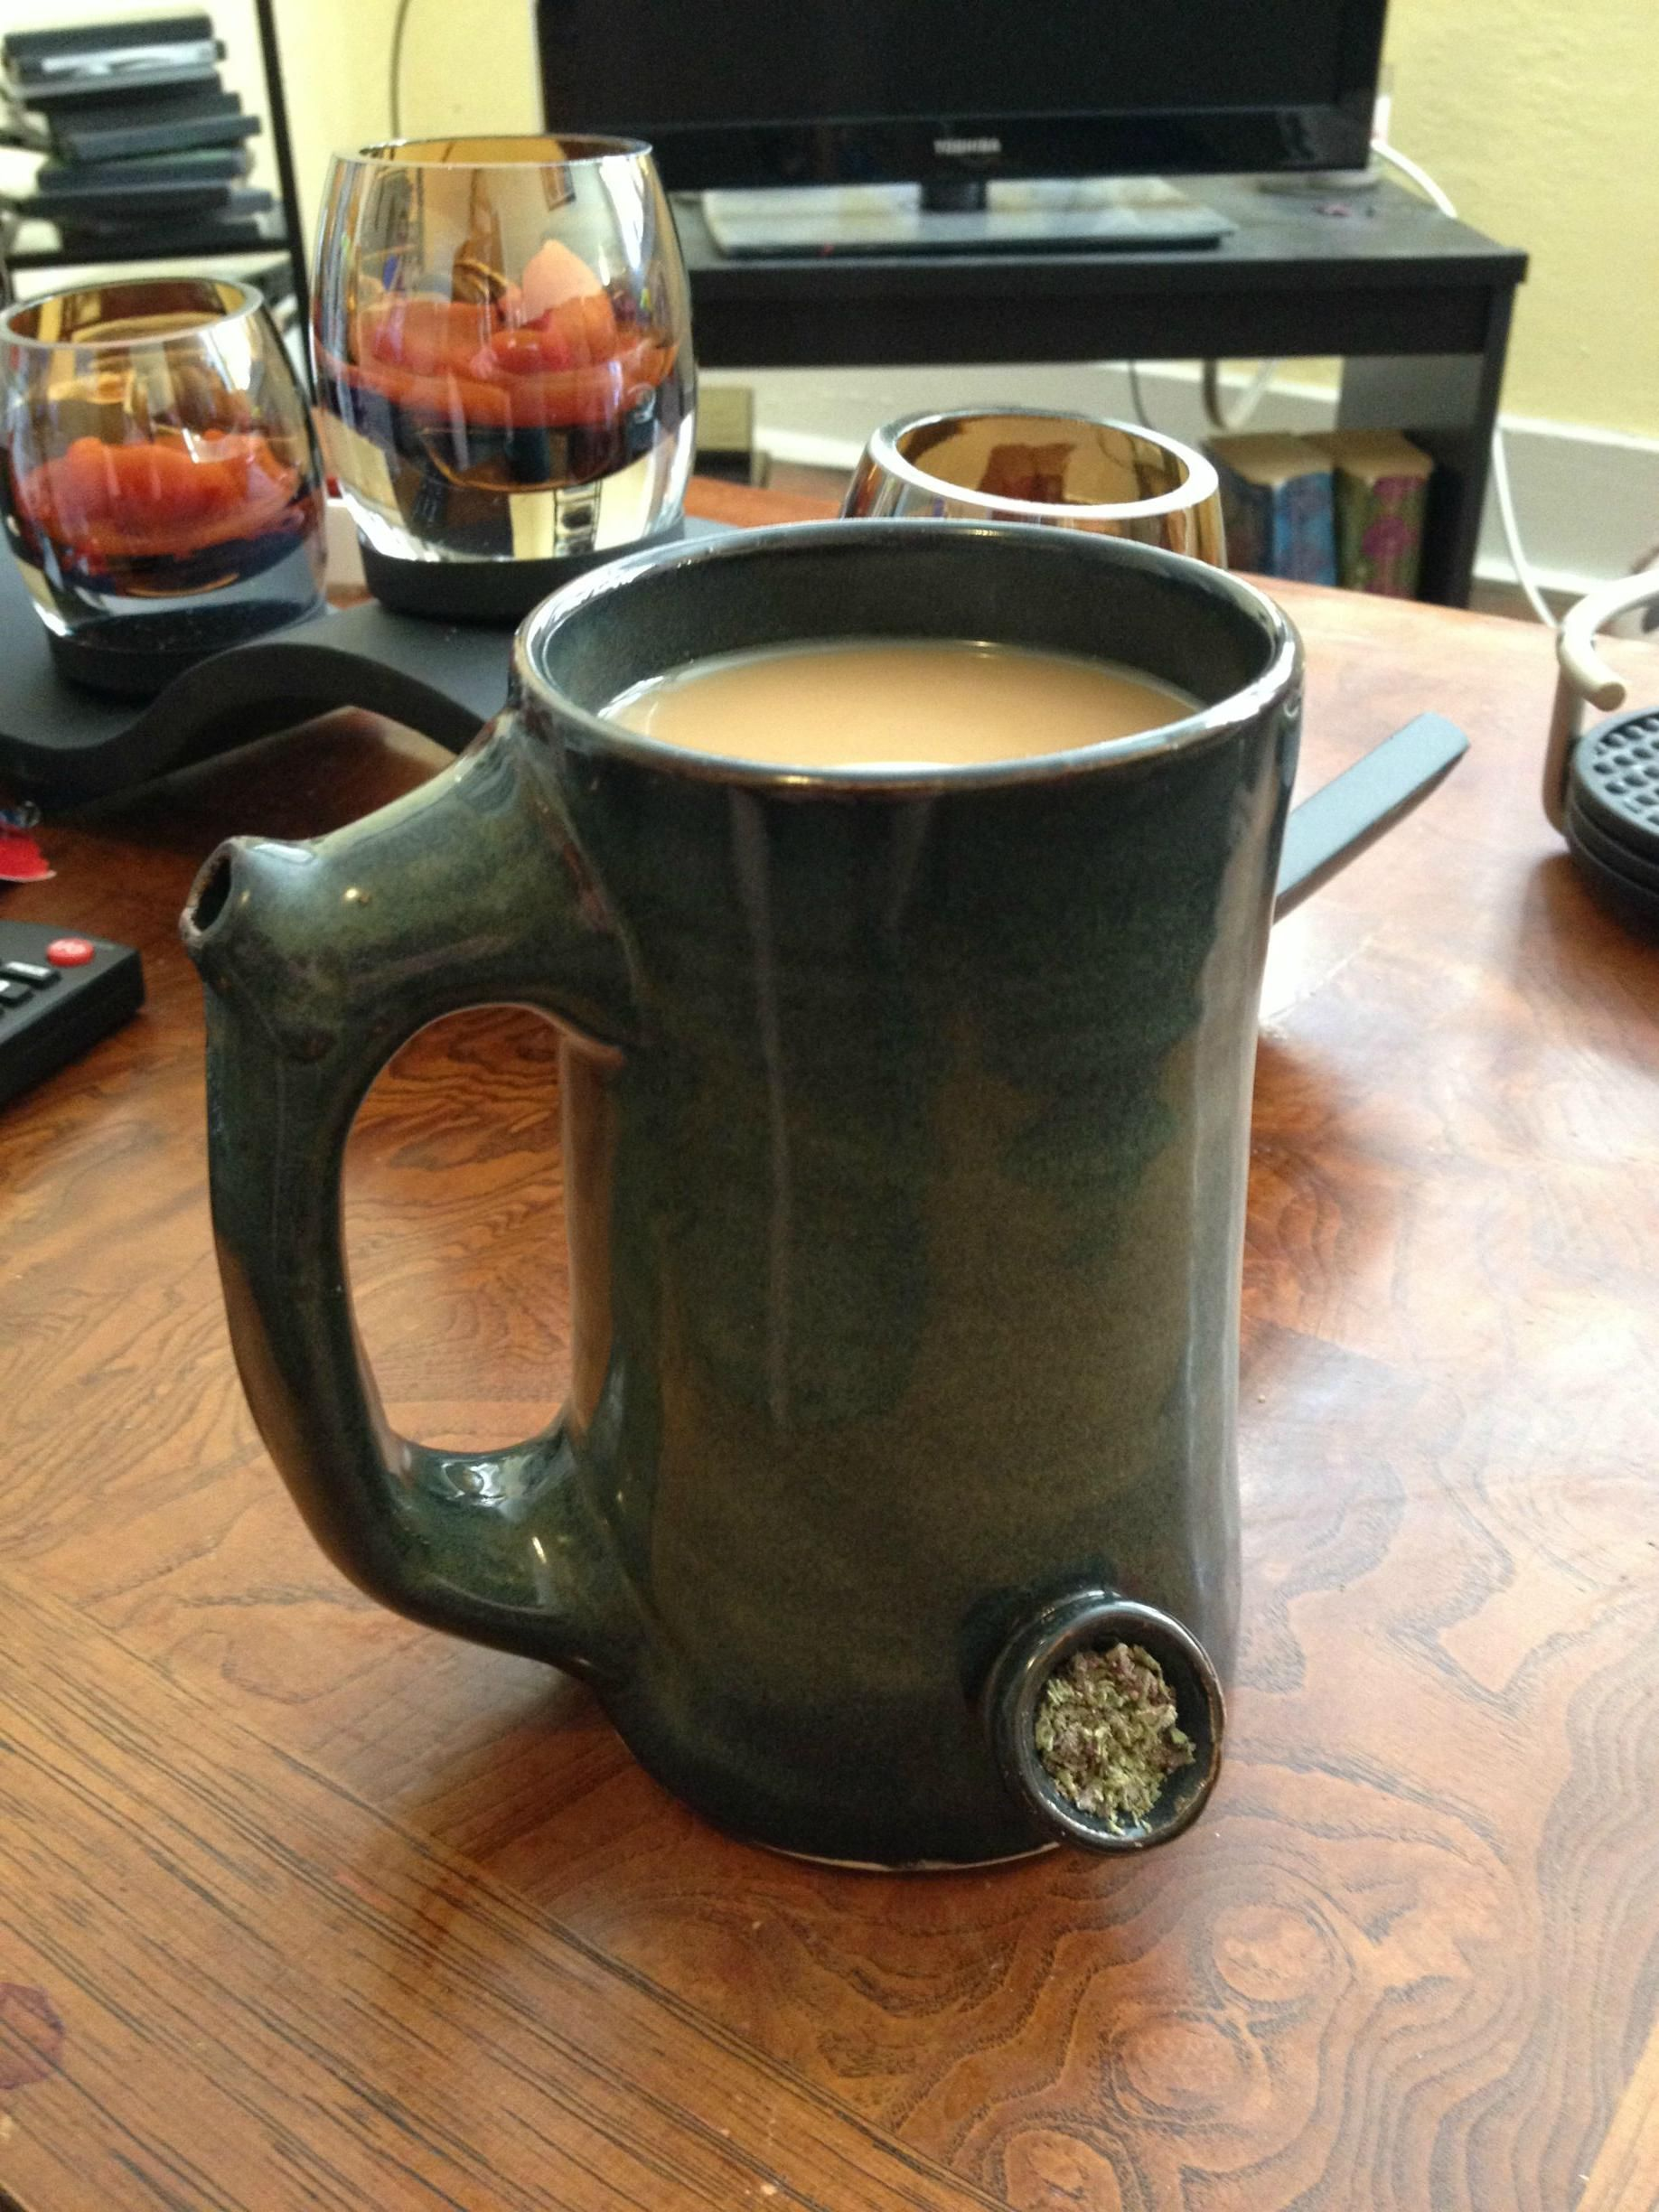 09a6083d018 coffee cup weed pipe | Eric | Pipes, bongs, Weed pipes, Wake, bake